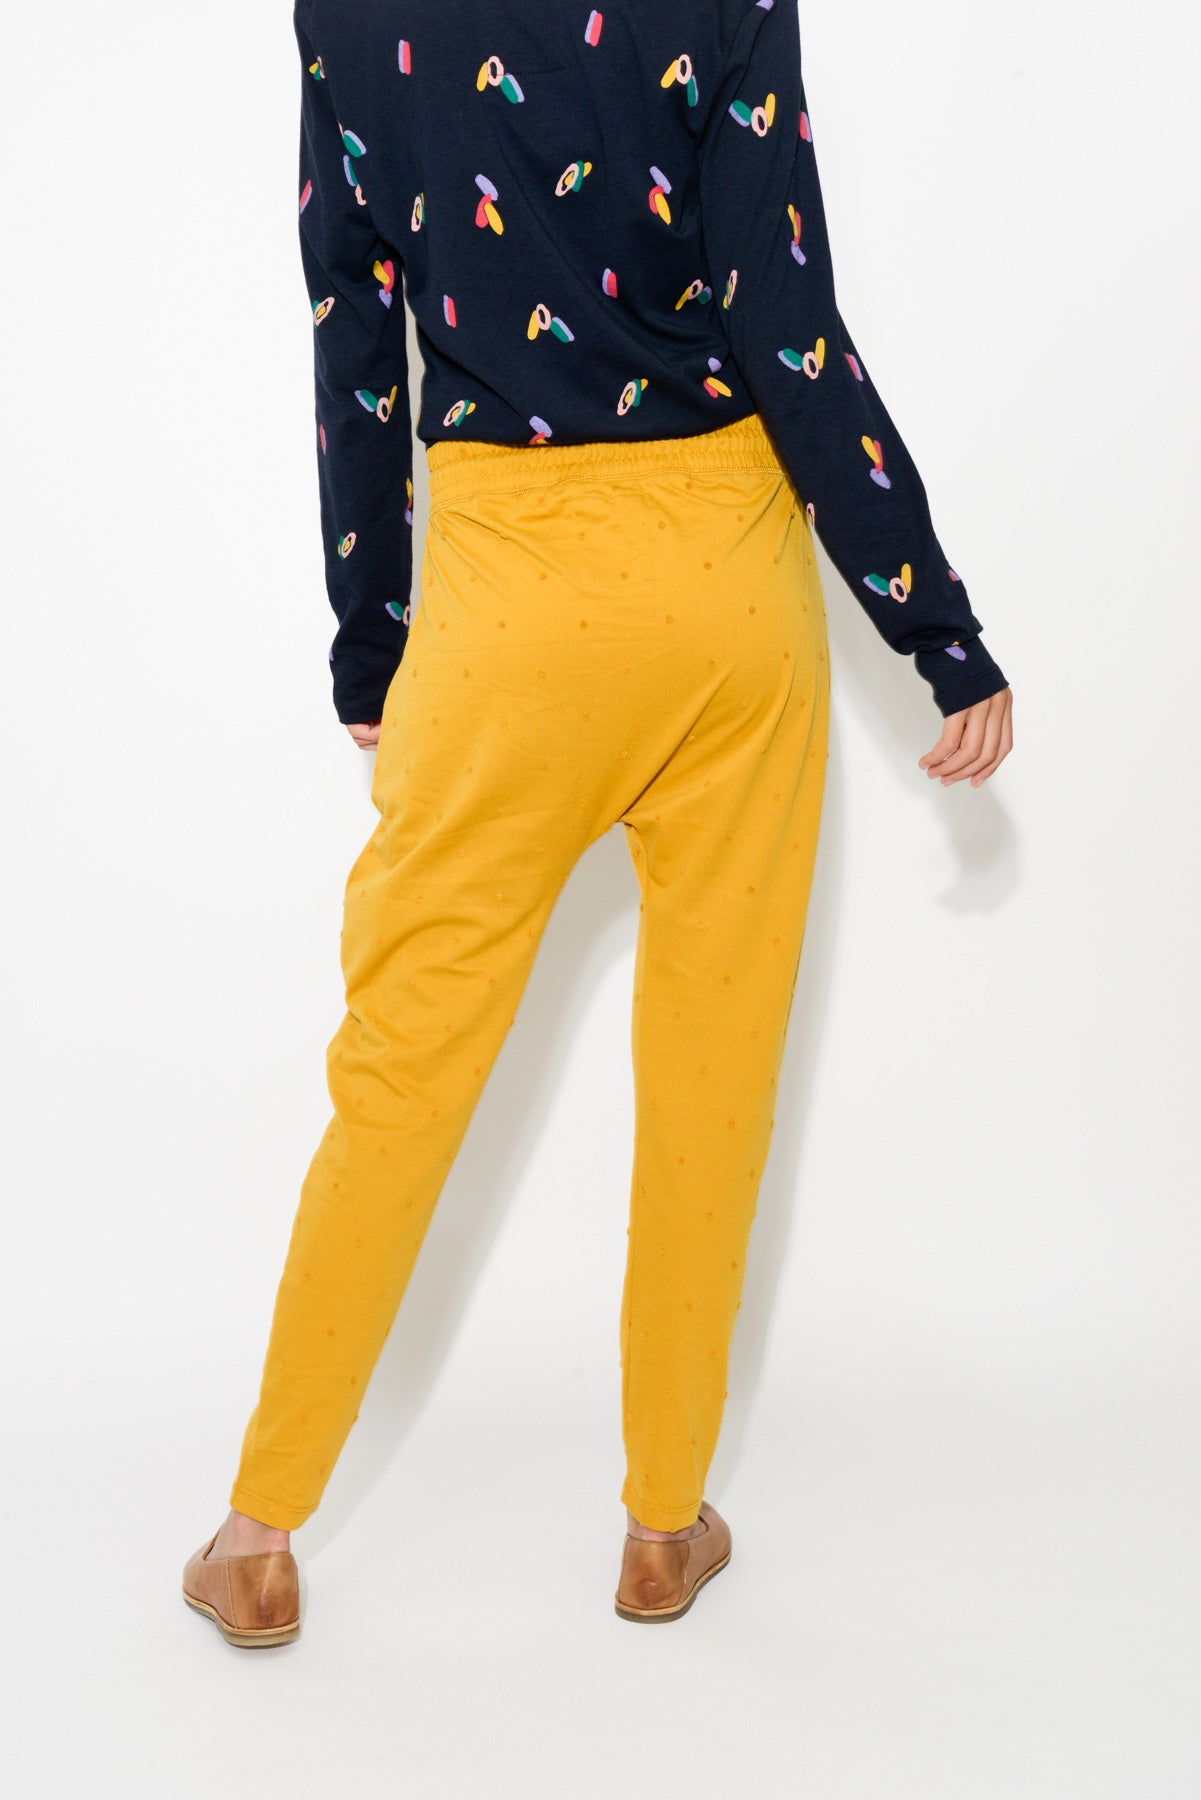 Wanderer Yellow Spot Pant - Blue Bungalow